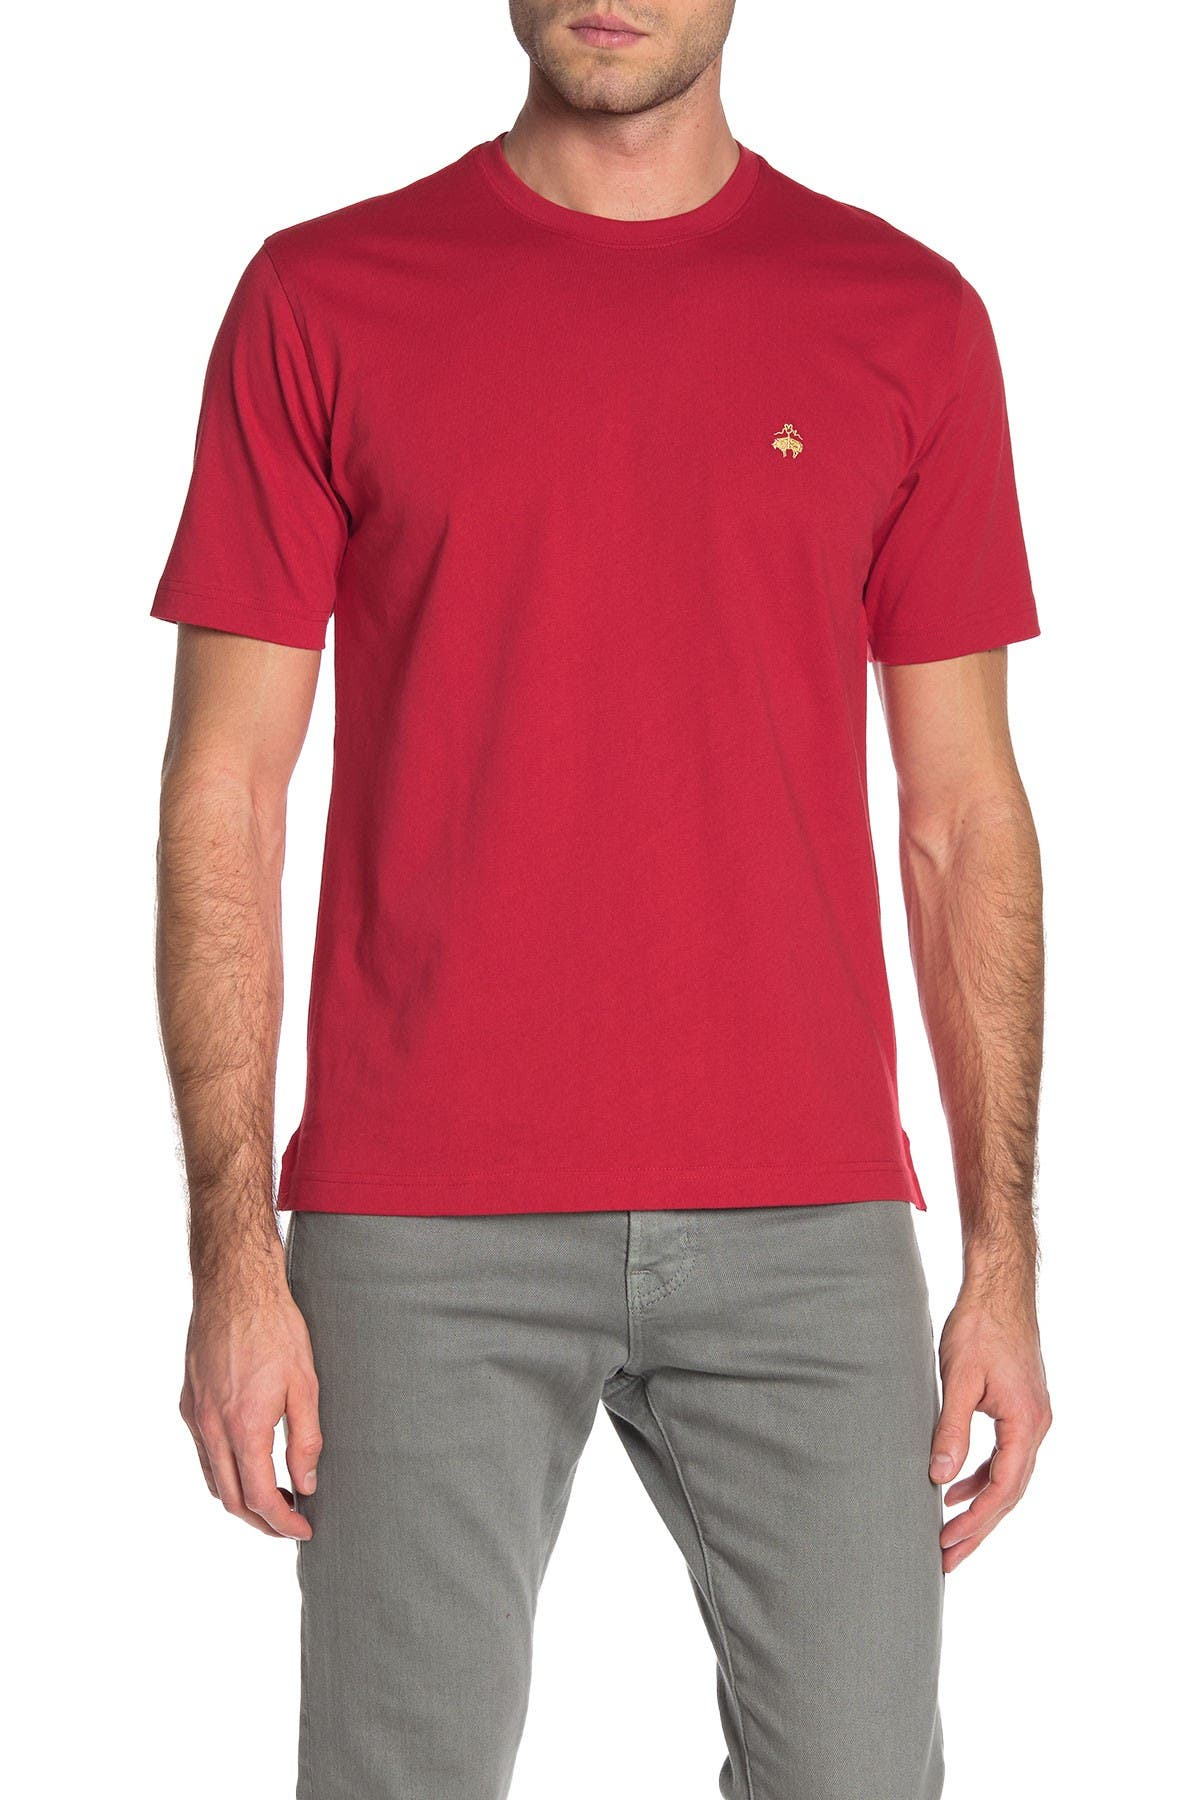 Image of Brooks Brothers Short Sleeve T-Shirt